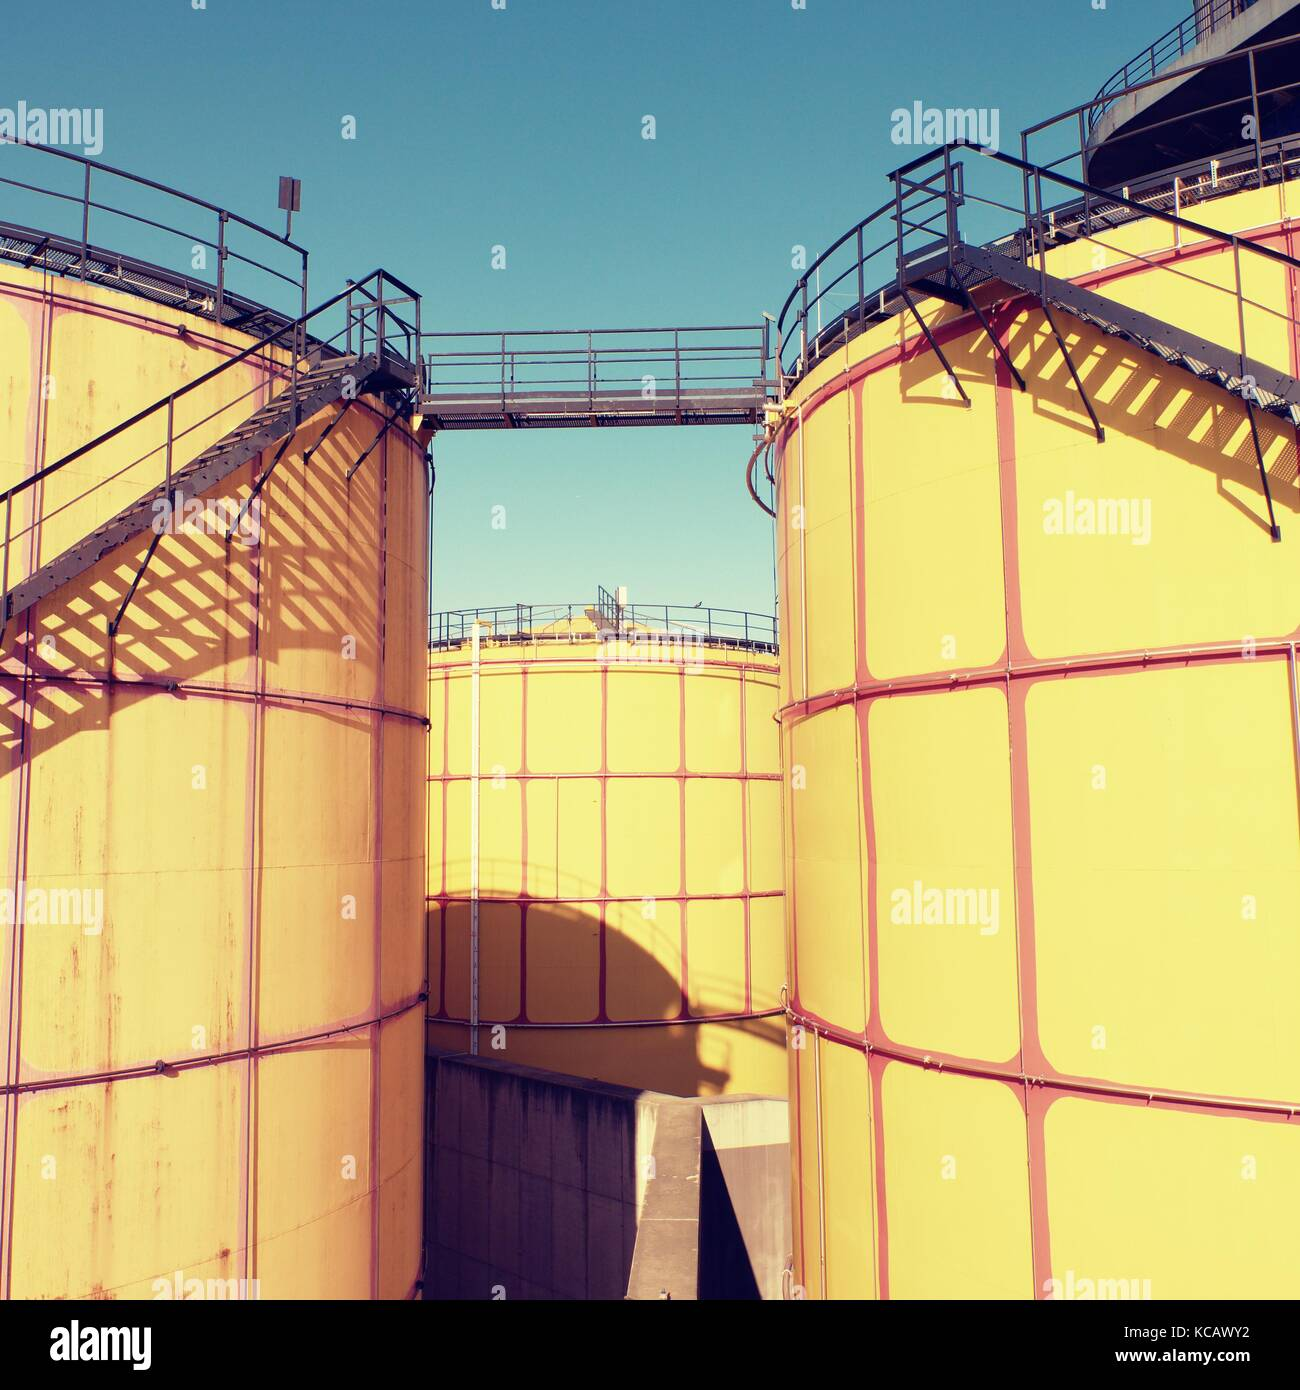 Old metal sheets l tanks in powerplant, old kind of factory plant. Metal construction with old yellow paint and - Stock Image